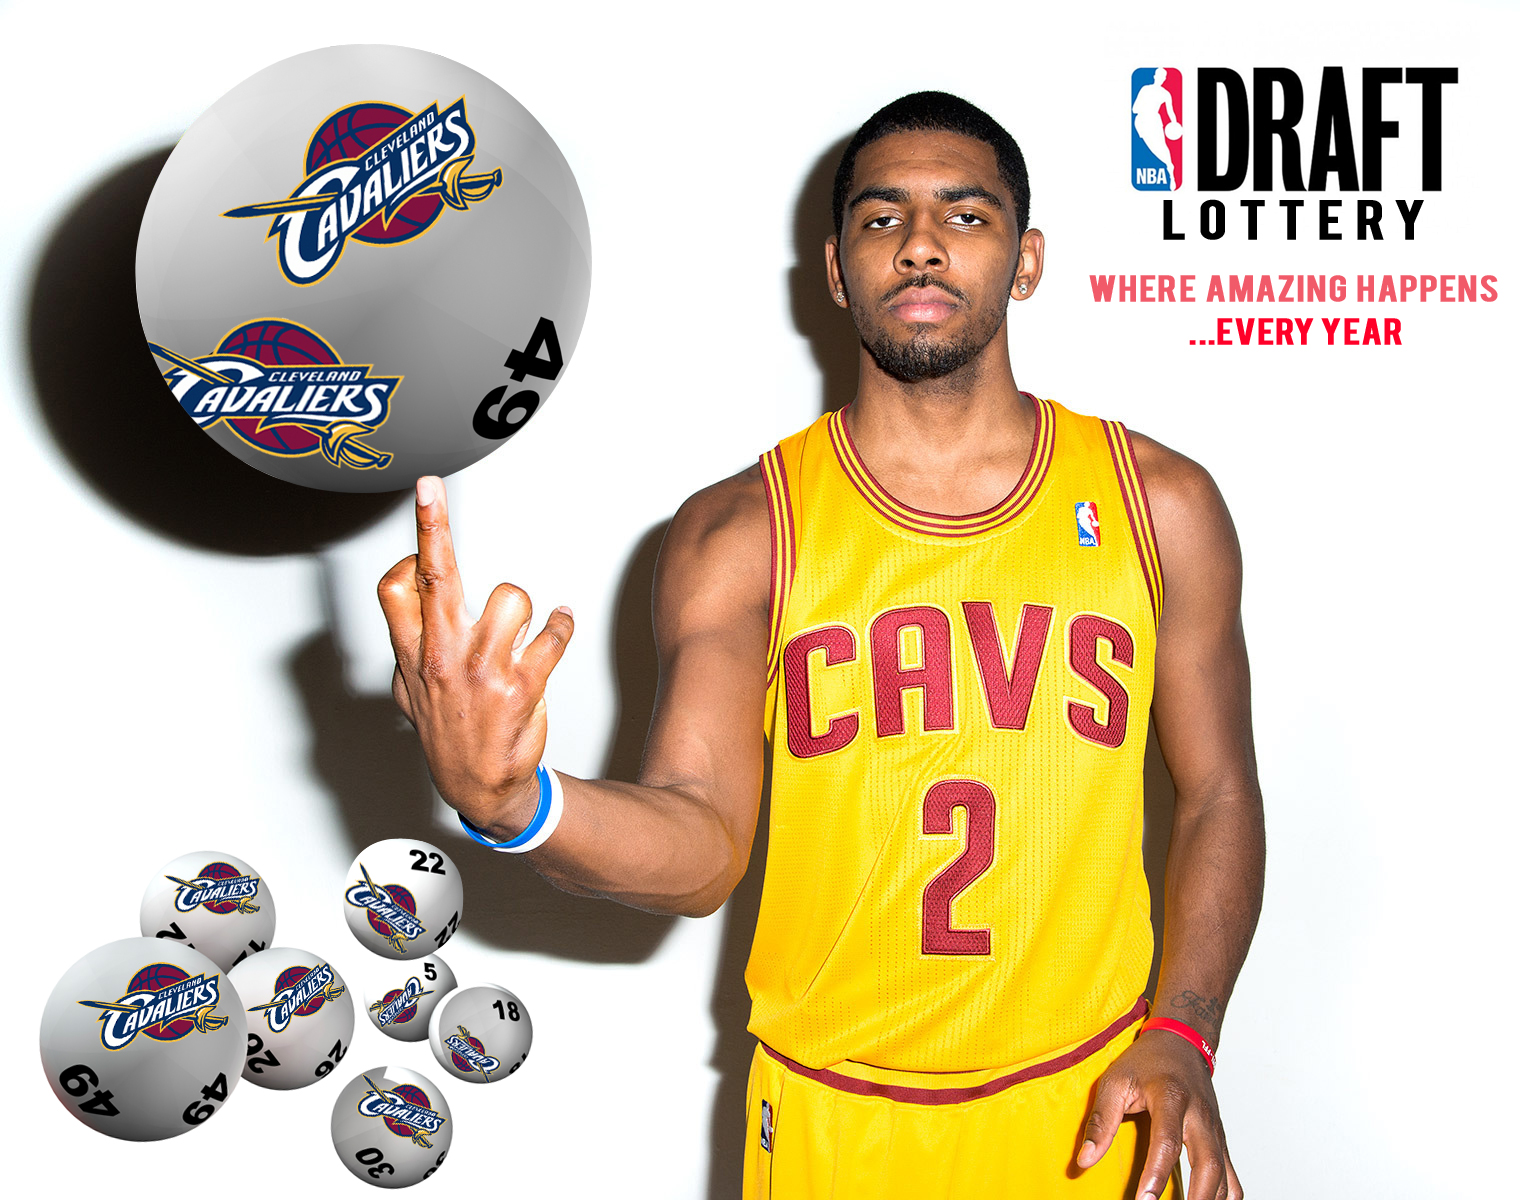 NBA Draft lottery: the Cleveland Cavaliers get the #1 pick… again!